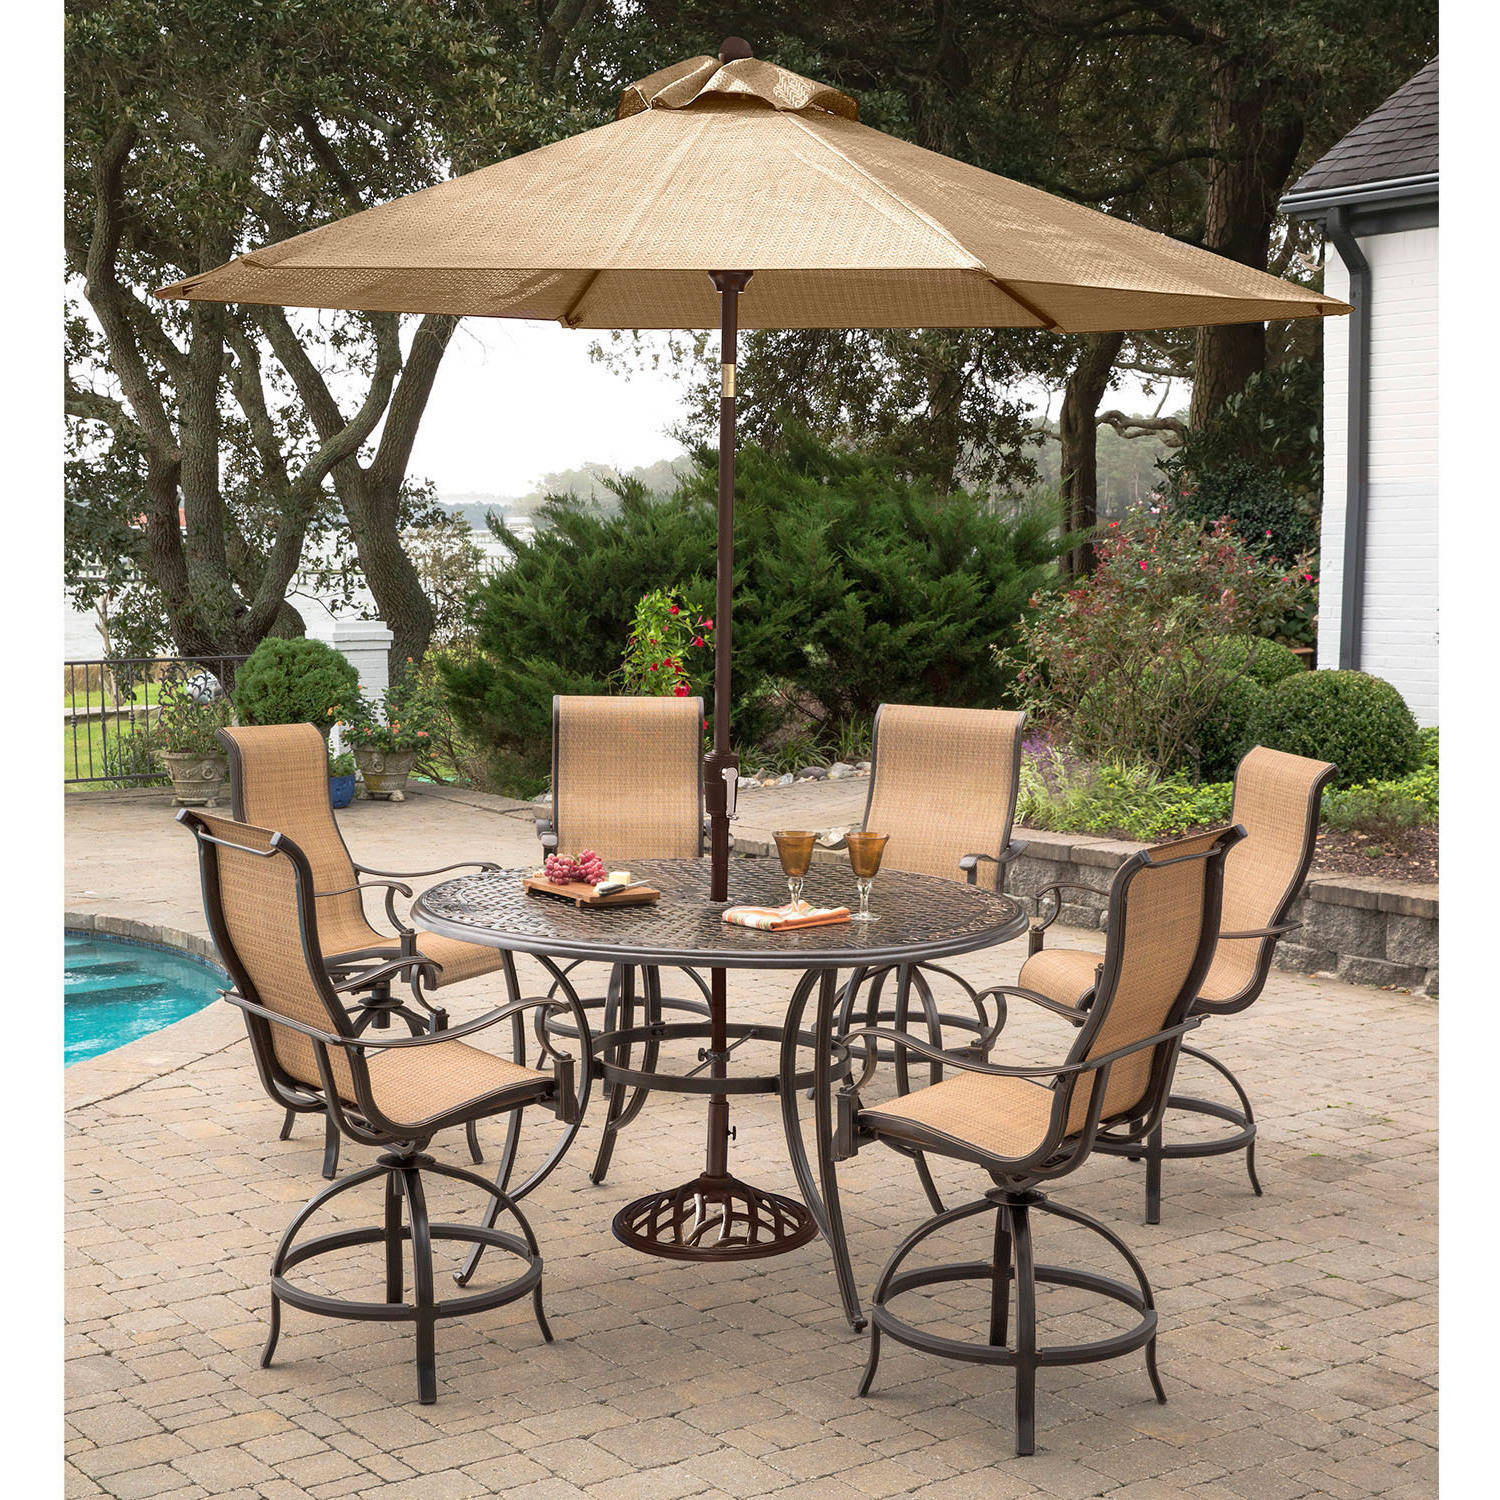 Hanover Manor 7-Piece Outdoor High-Dining Bar Set with Umbrella and Stand